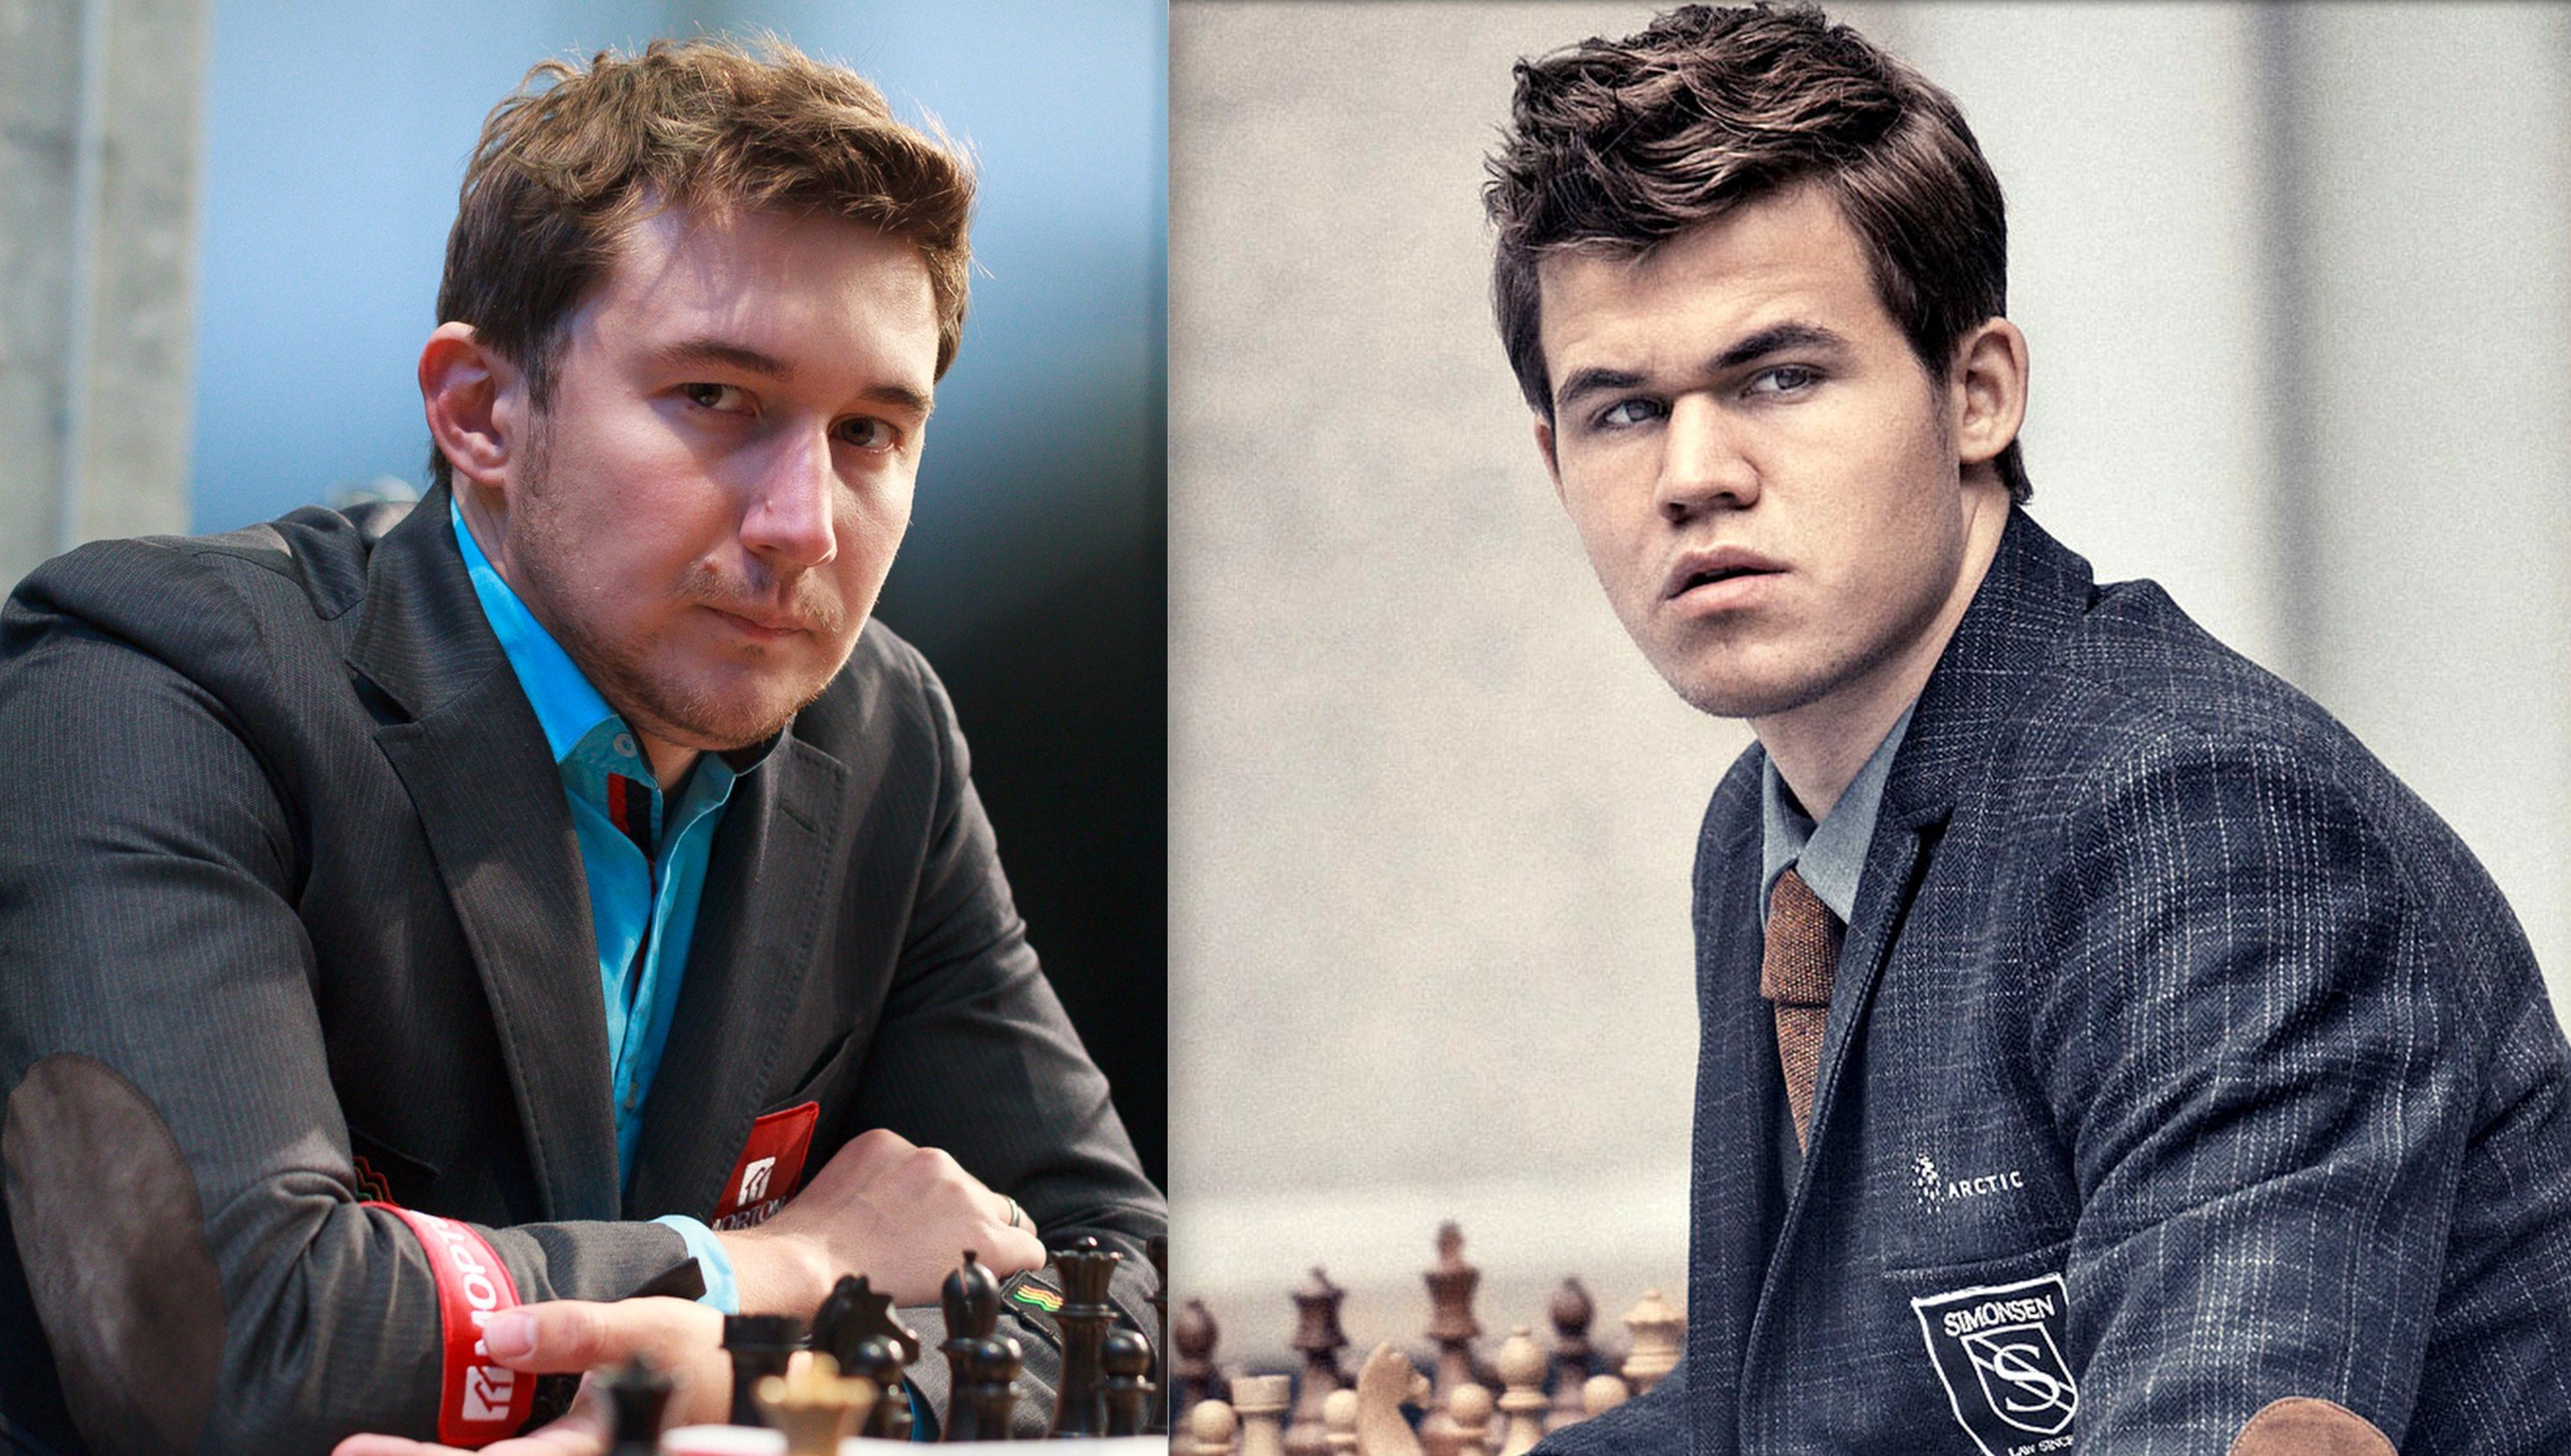 The World Chess Championship match between Sergey Karjakin (L) and World Champion Carlsen (R) will be played out from Nov 11 to Nov 30.